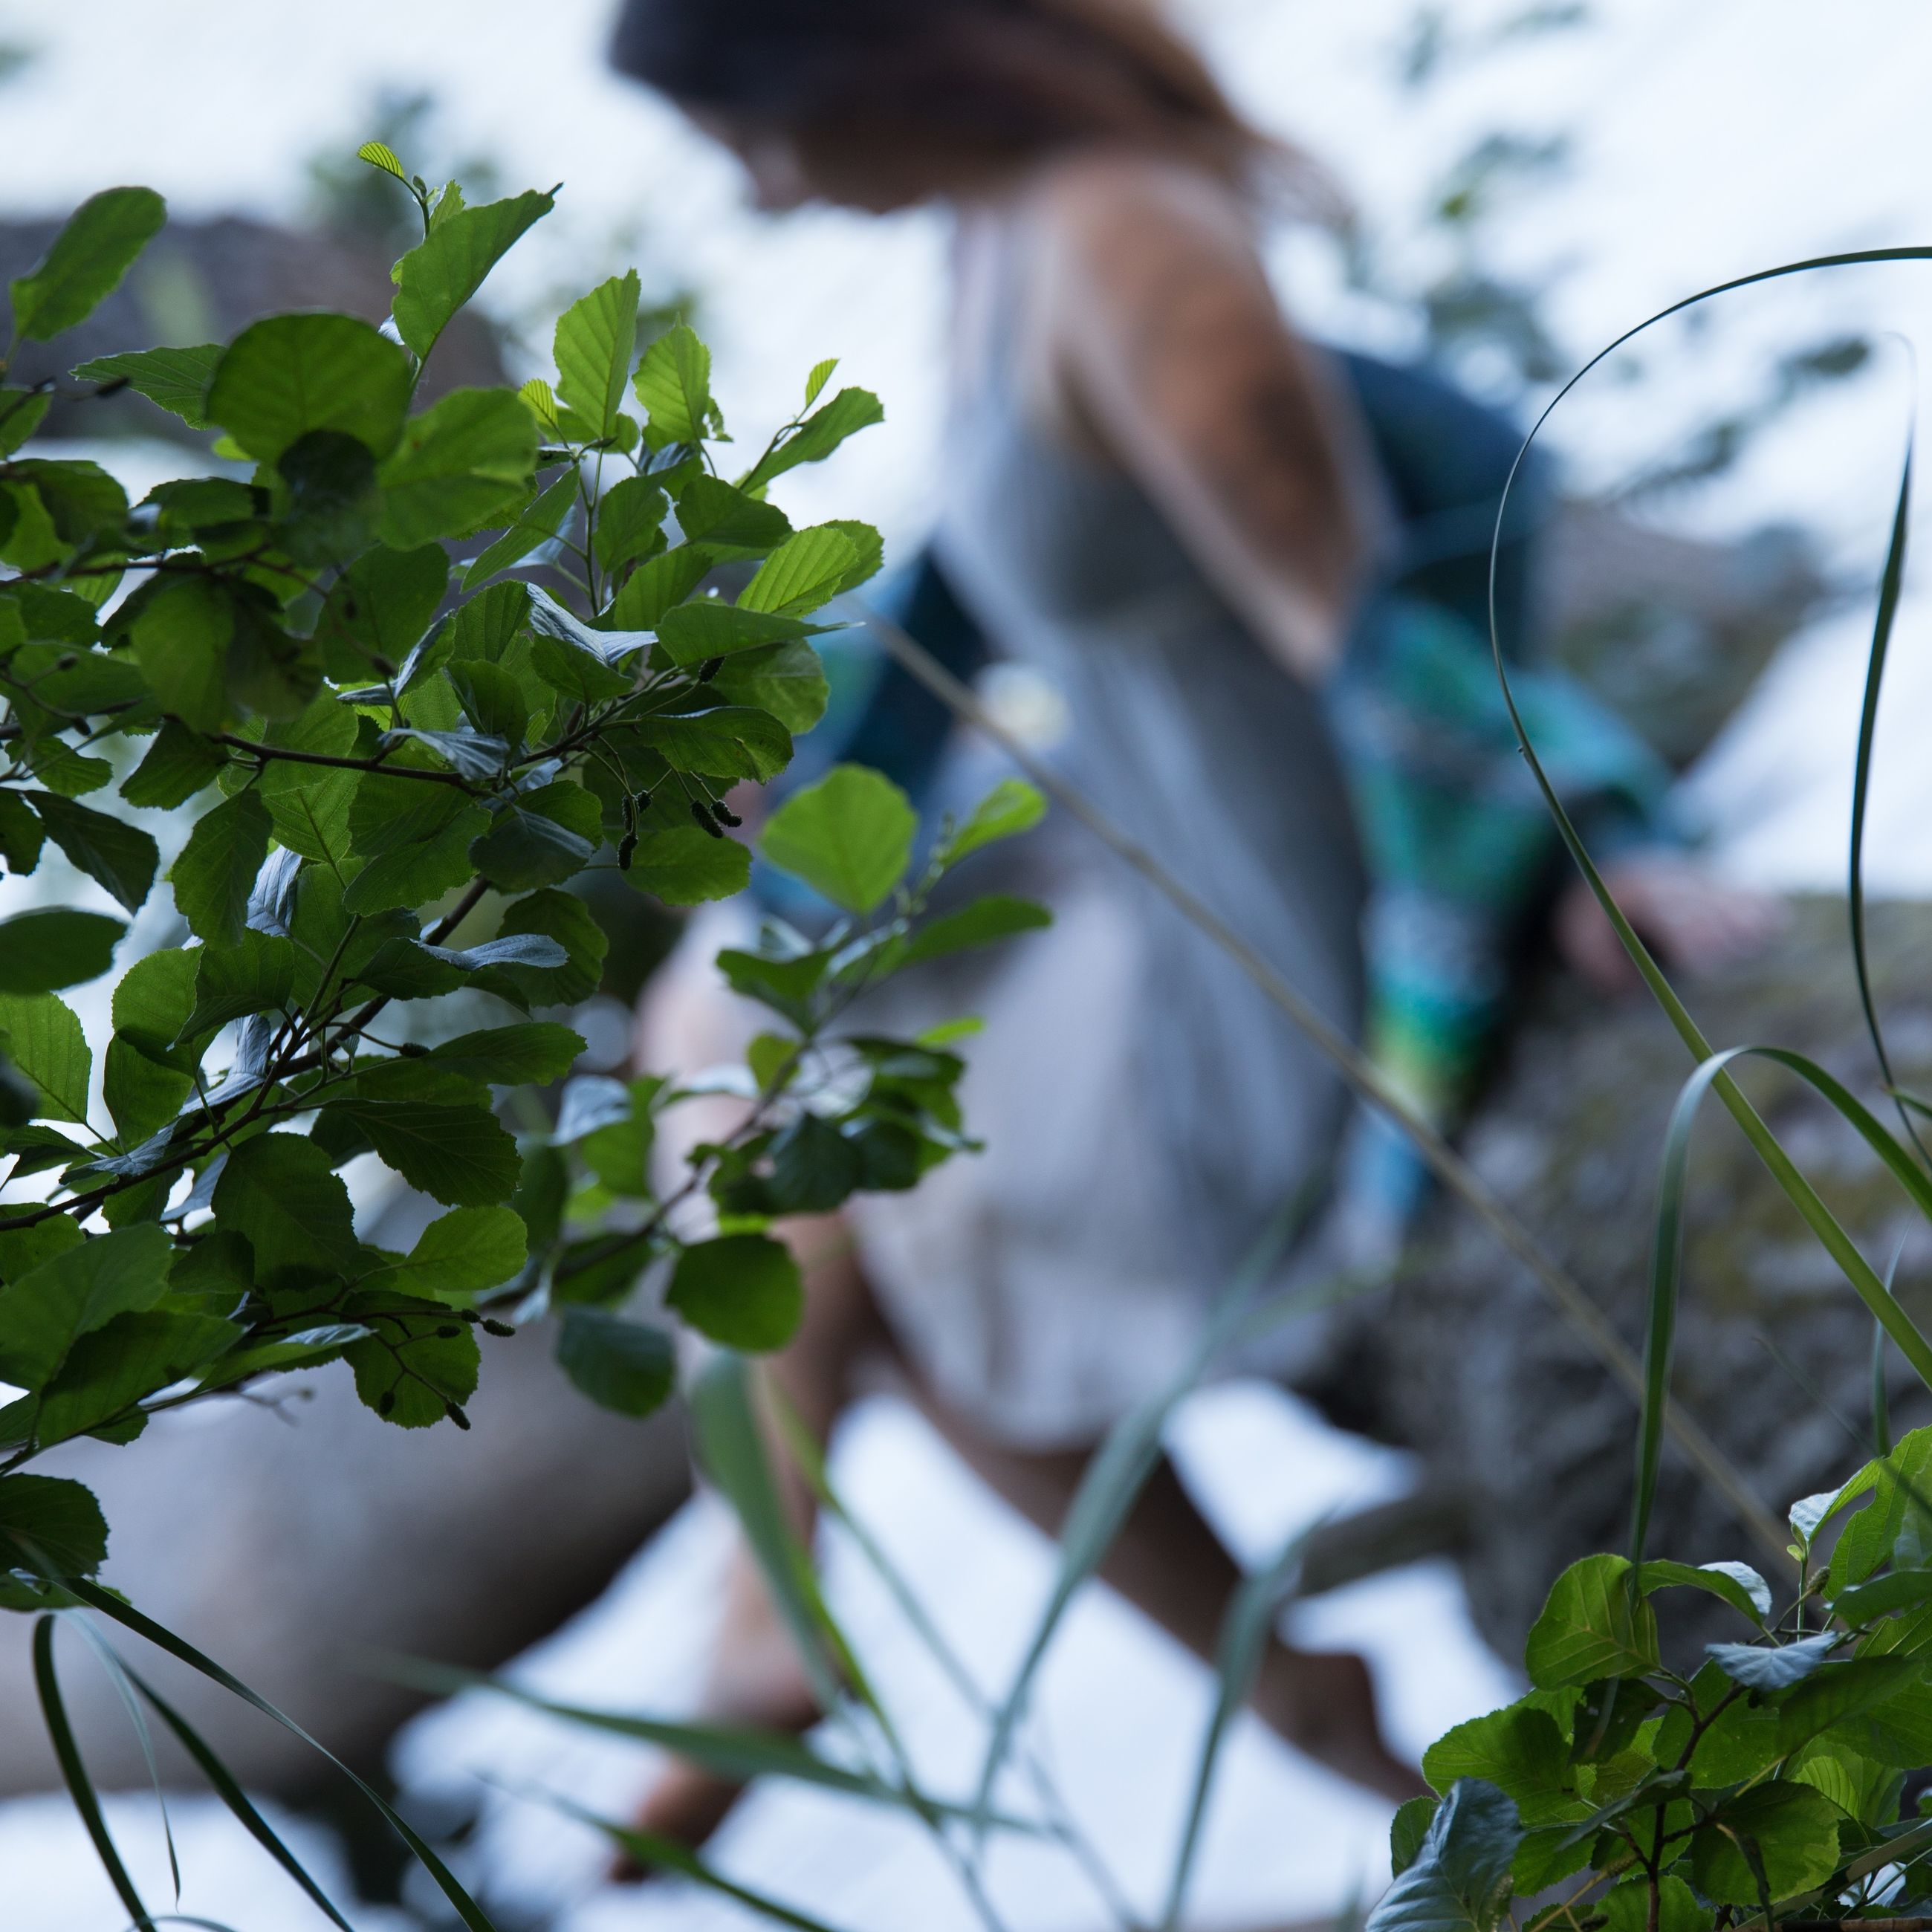 plant, leaf, plant part, growth, focus on foreground, green color, nature, day, close-up, selective focus, outdoors, one person, real people, tree, lifestyles, potted plant, beauty in nature